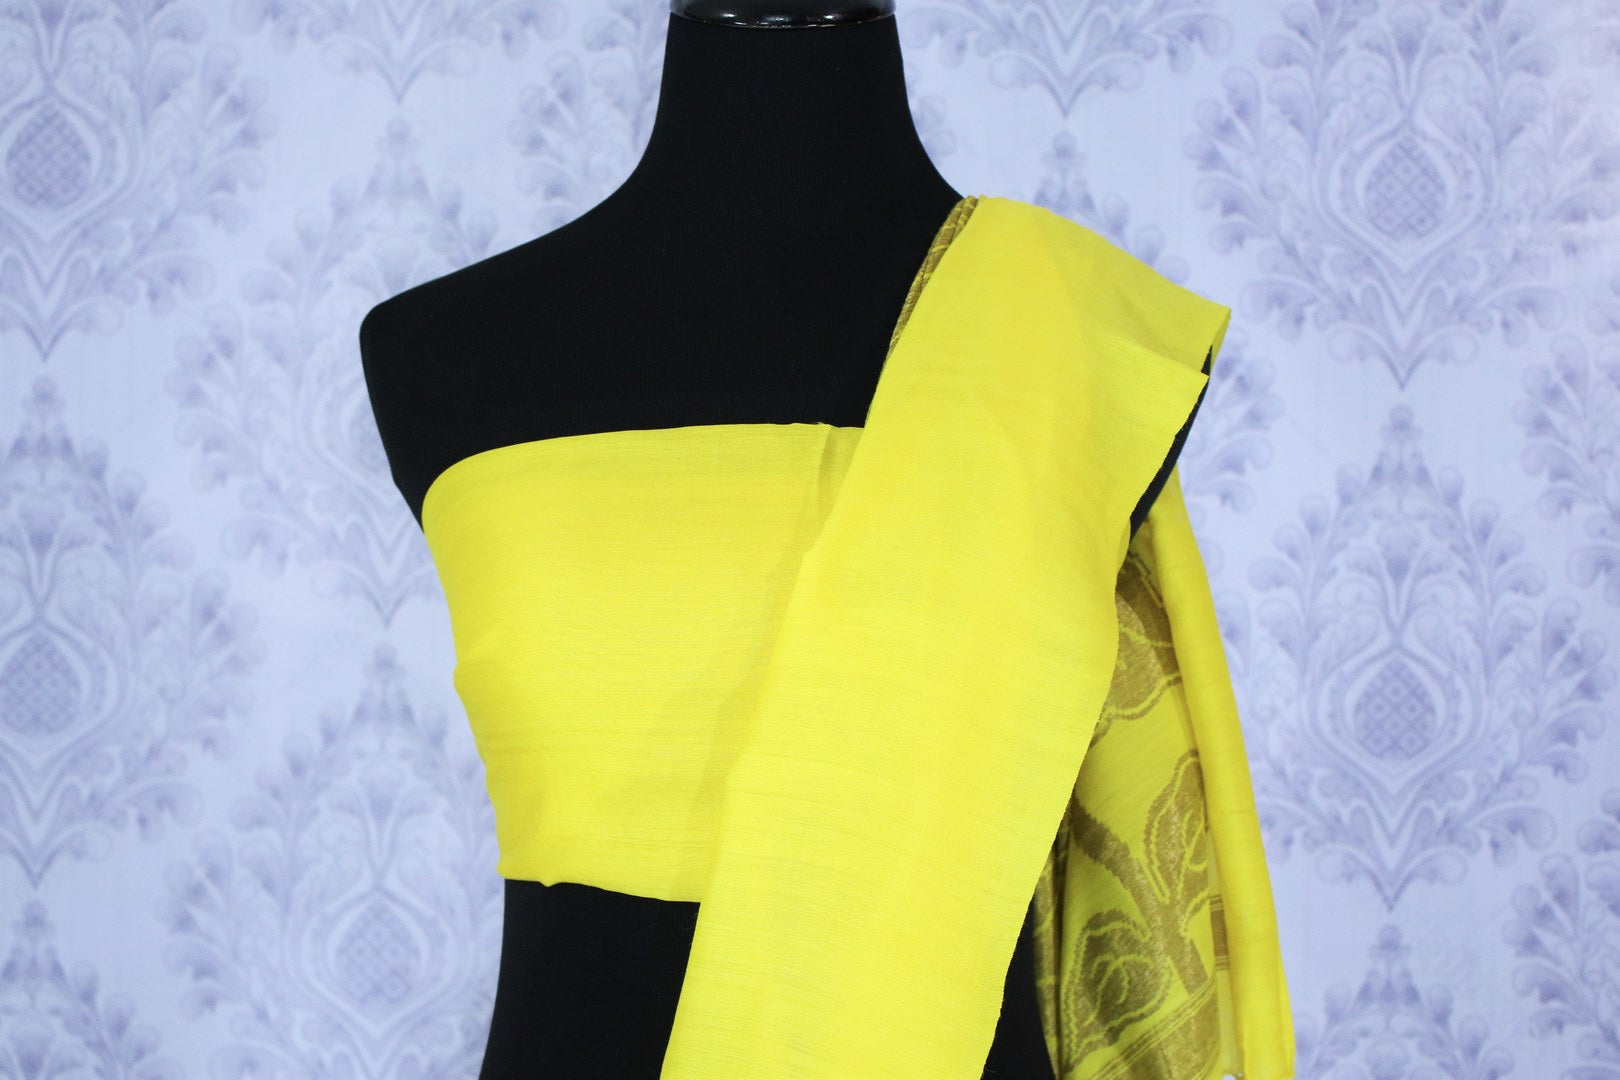 Buy lemon yellow muga Banarasi sari online in USA. The bright saree is a great choice for a classic Indian saree look at special occasions. Select from an exquisite collection of traditional Indian Banarasi sarees, silk sarees at Pure Elegance clothing store or shop online for weddings, parties, and festivals.-blouse pallu